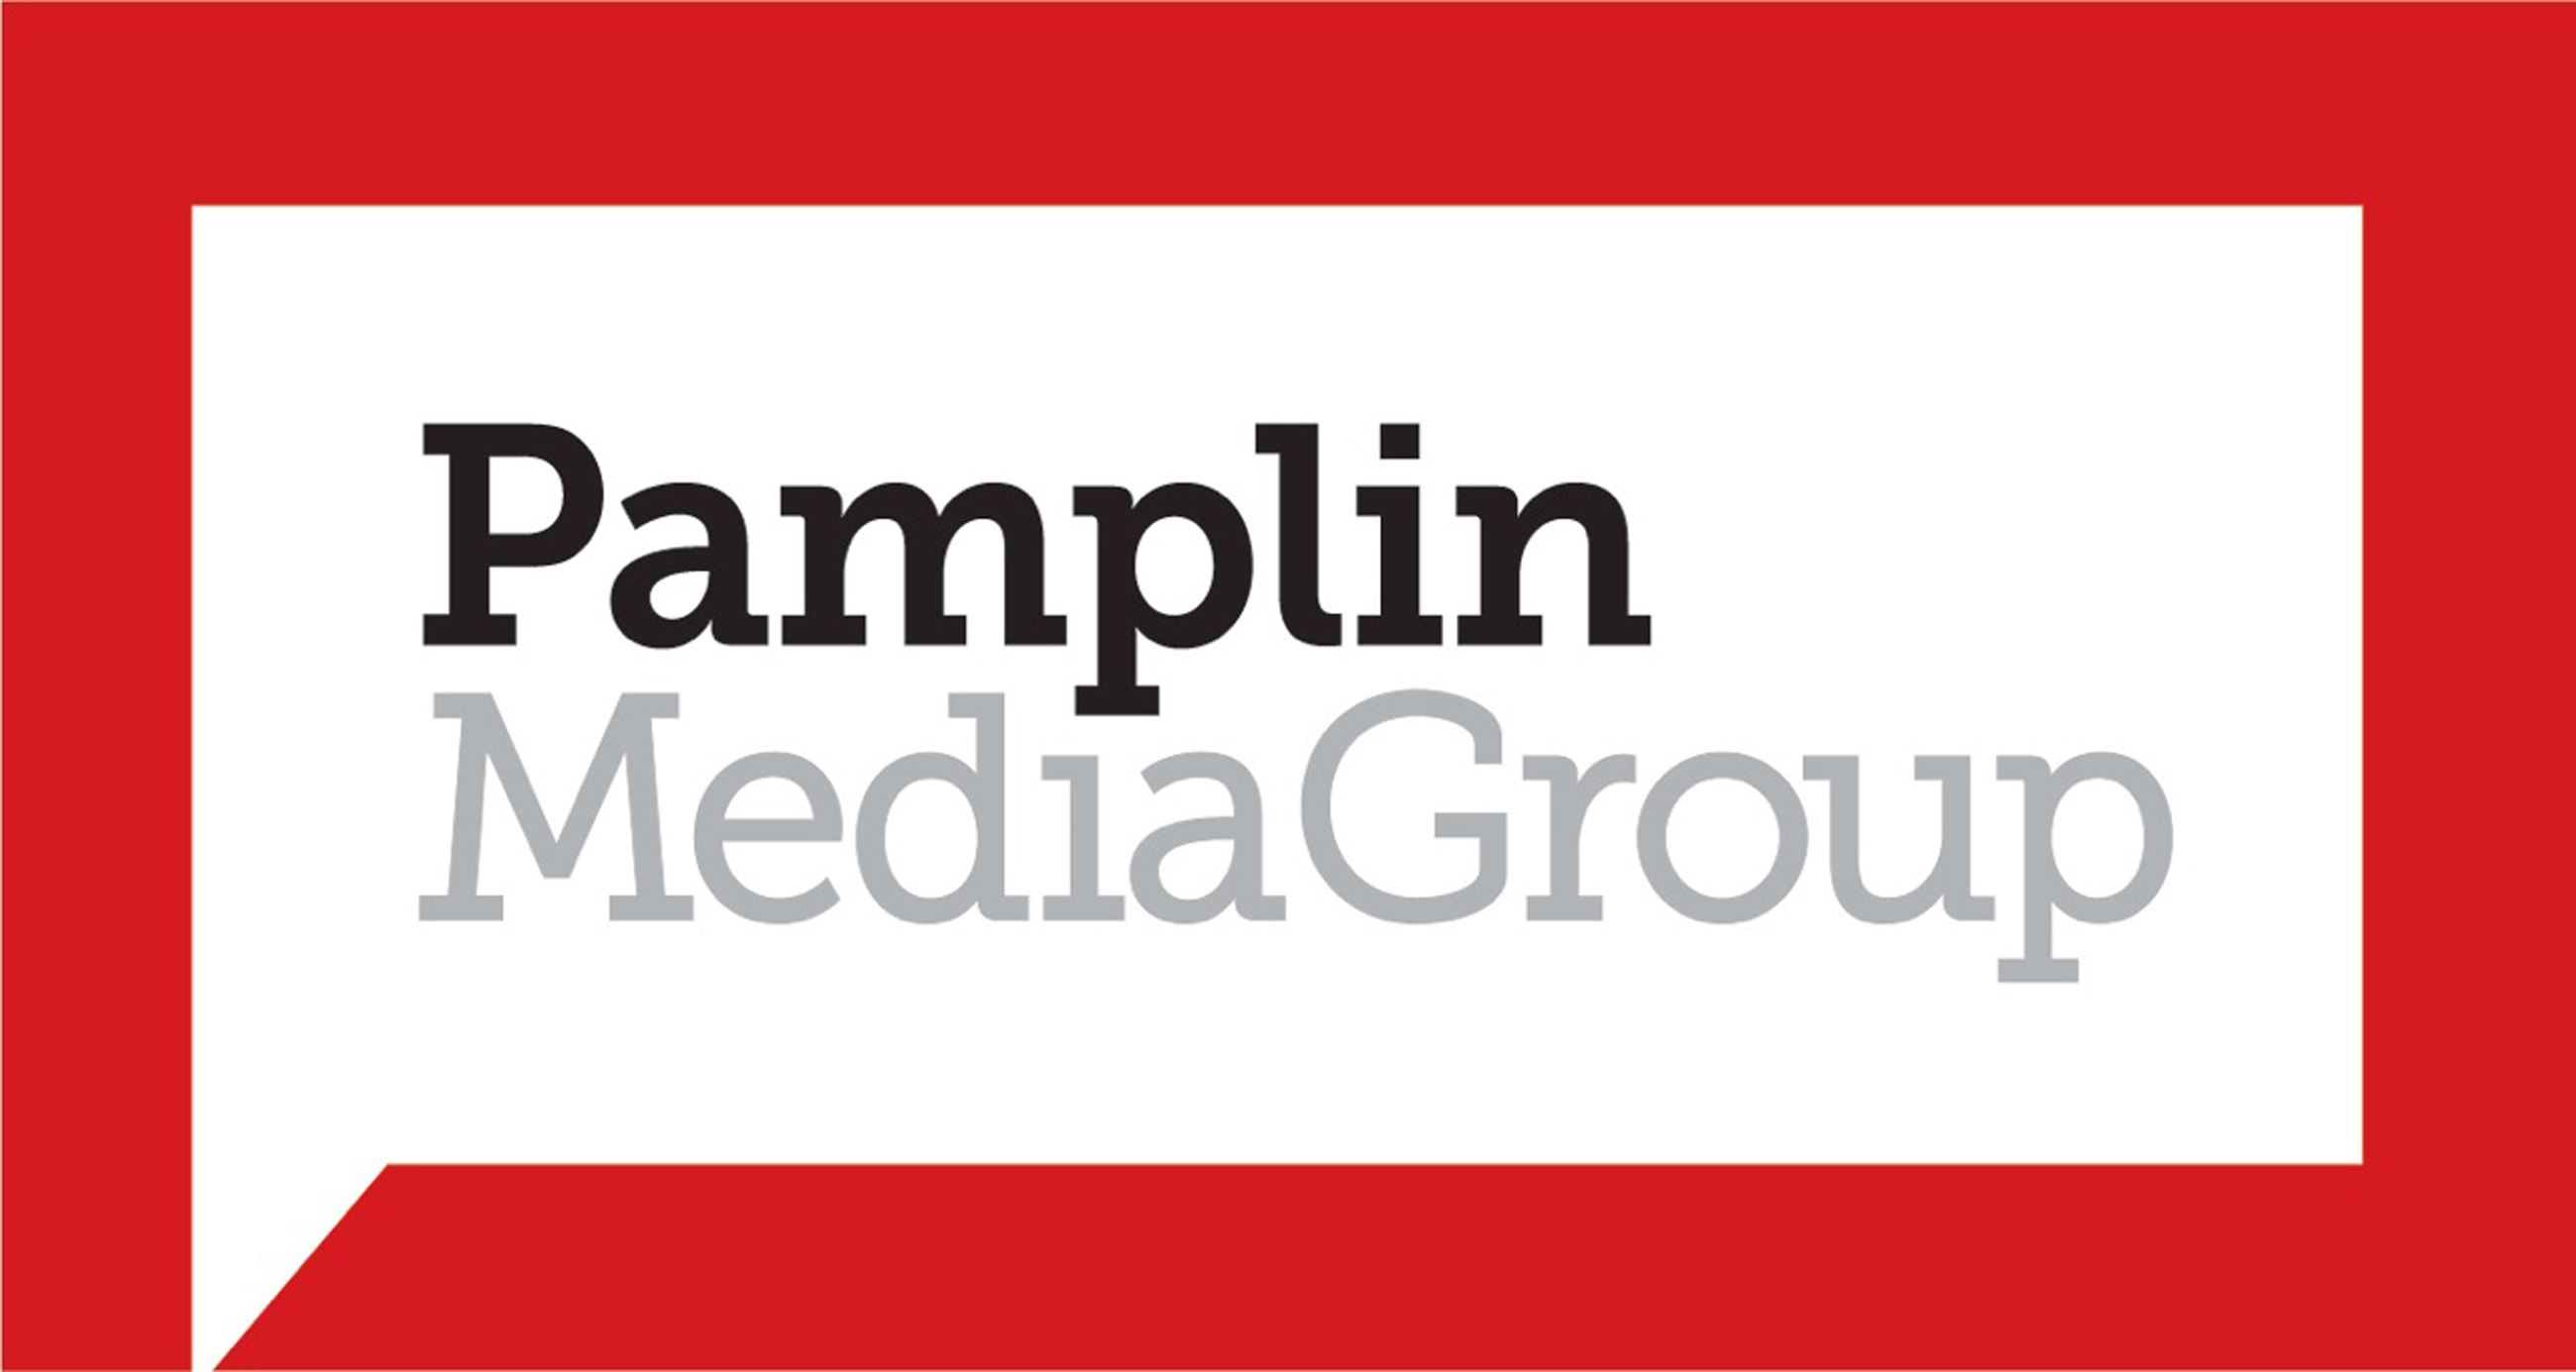 Logo for Pamplin Media Group, Portland area media conglomerate.